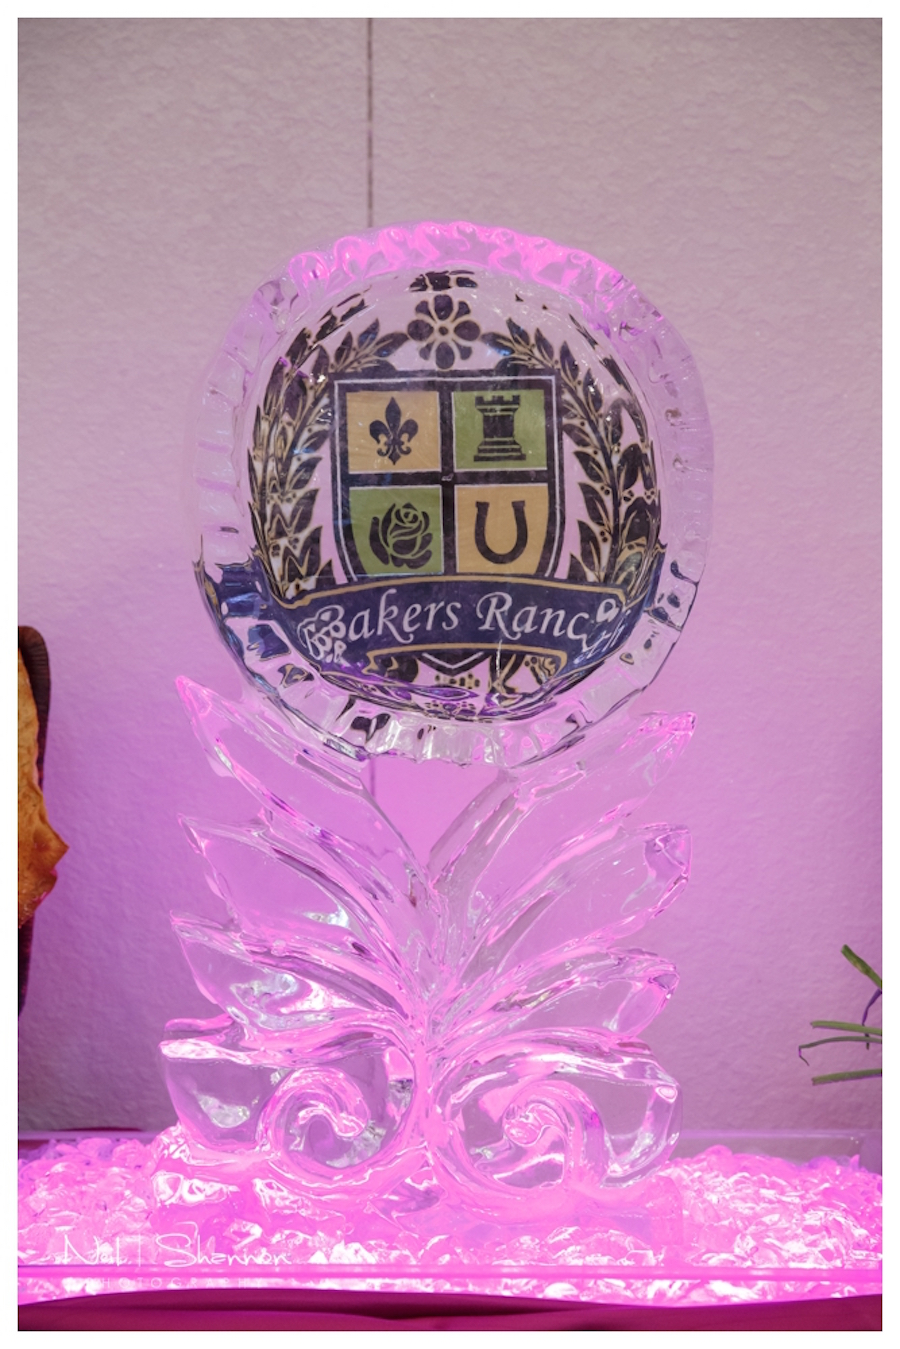 Wedding Ice Sculpture | Rustic, Elegant Sarasota Wedding Venue | Bakers Ranch